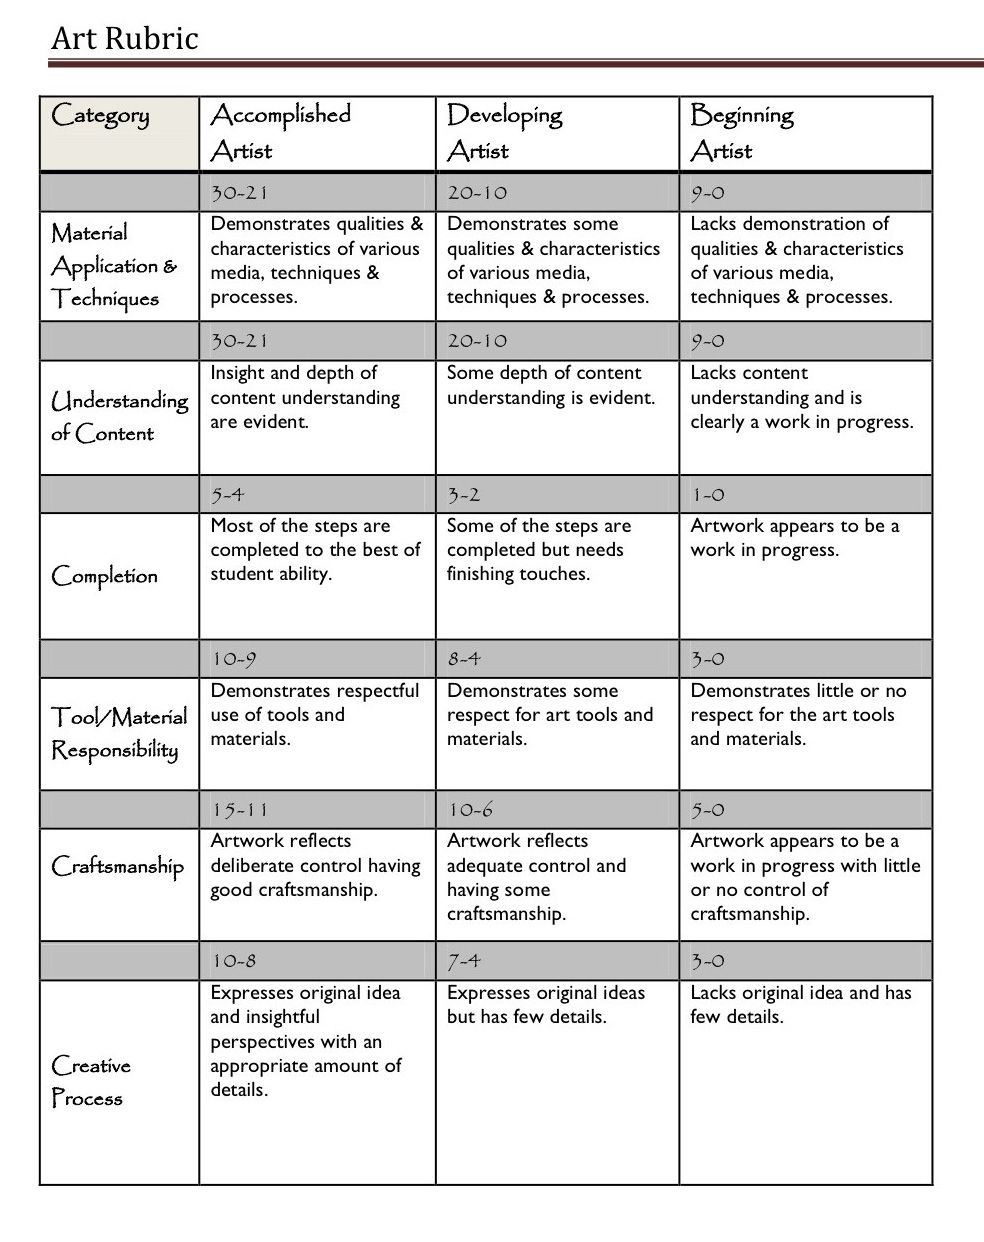 A Handy Rubric For Art Teachers | Assessment Tools & Ideas | Art - Free Printable Art Rubrics